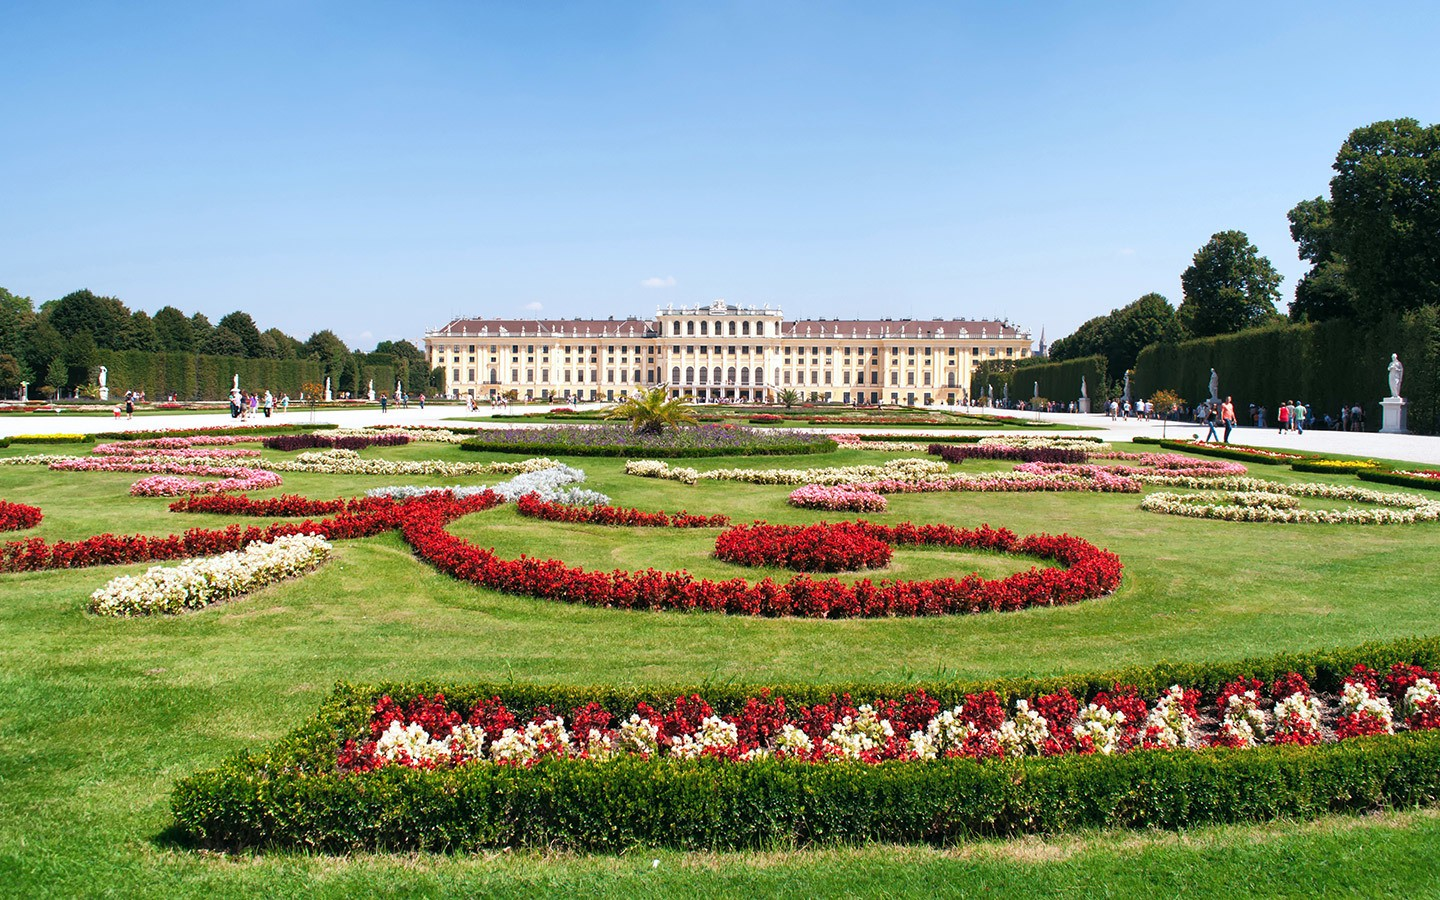 The Schönbrunn Palace and gardens in Vienna, Austria